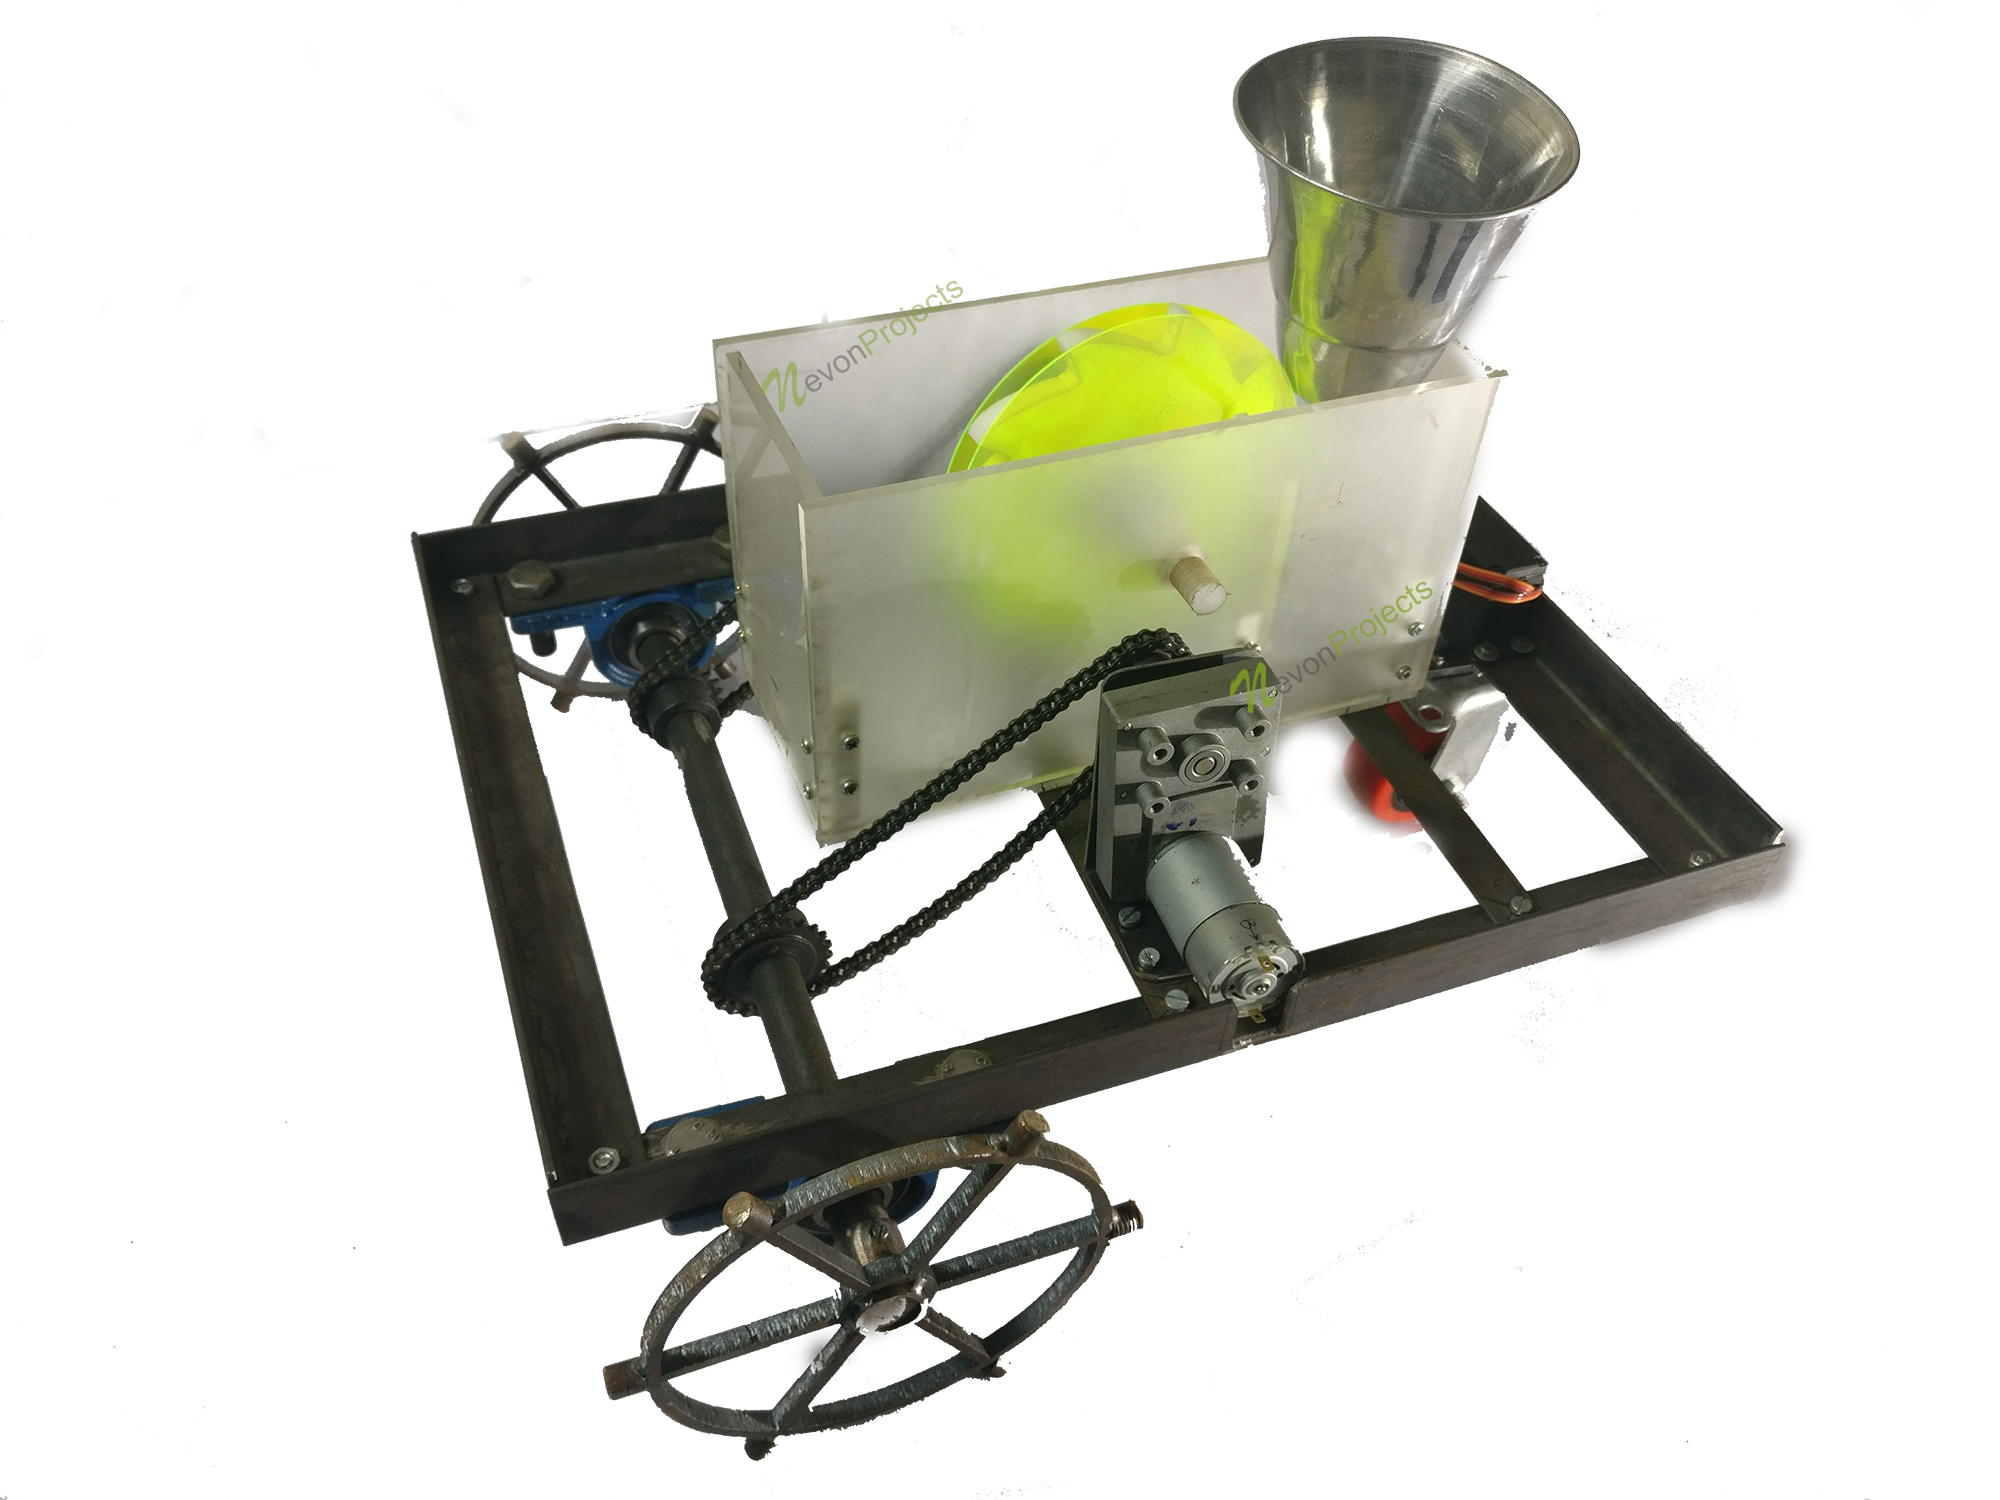 Automatic Seed Sowing Robot